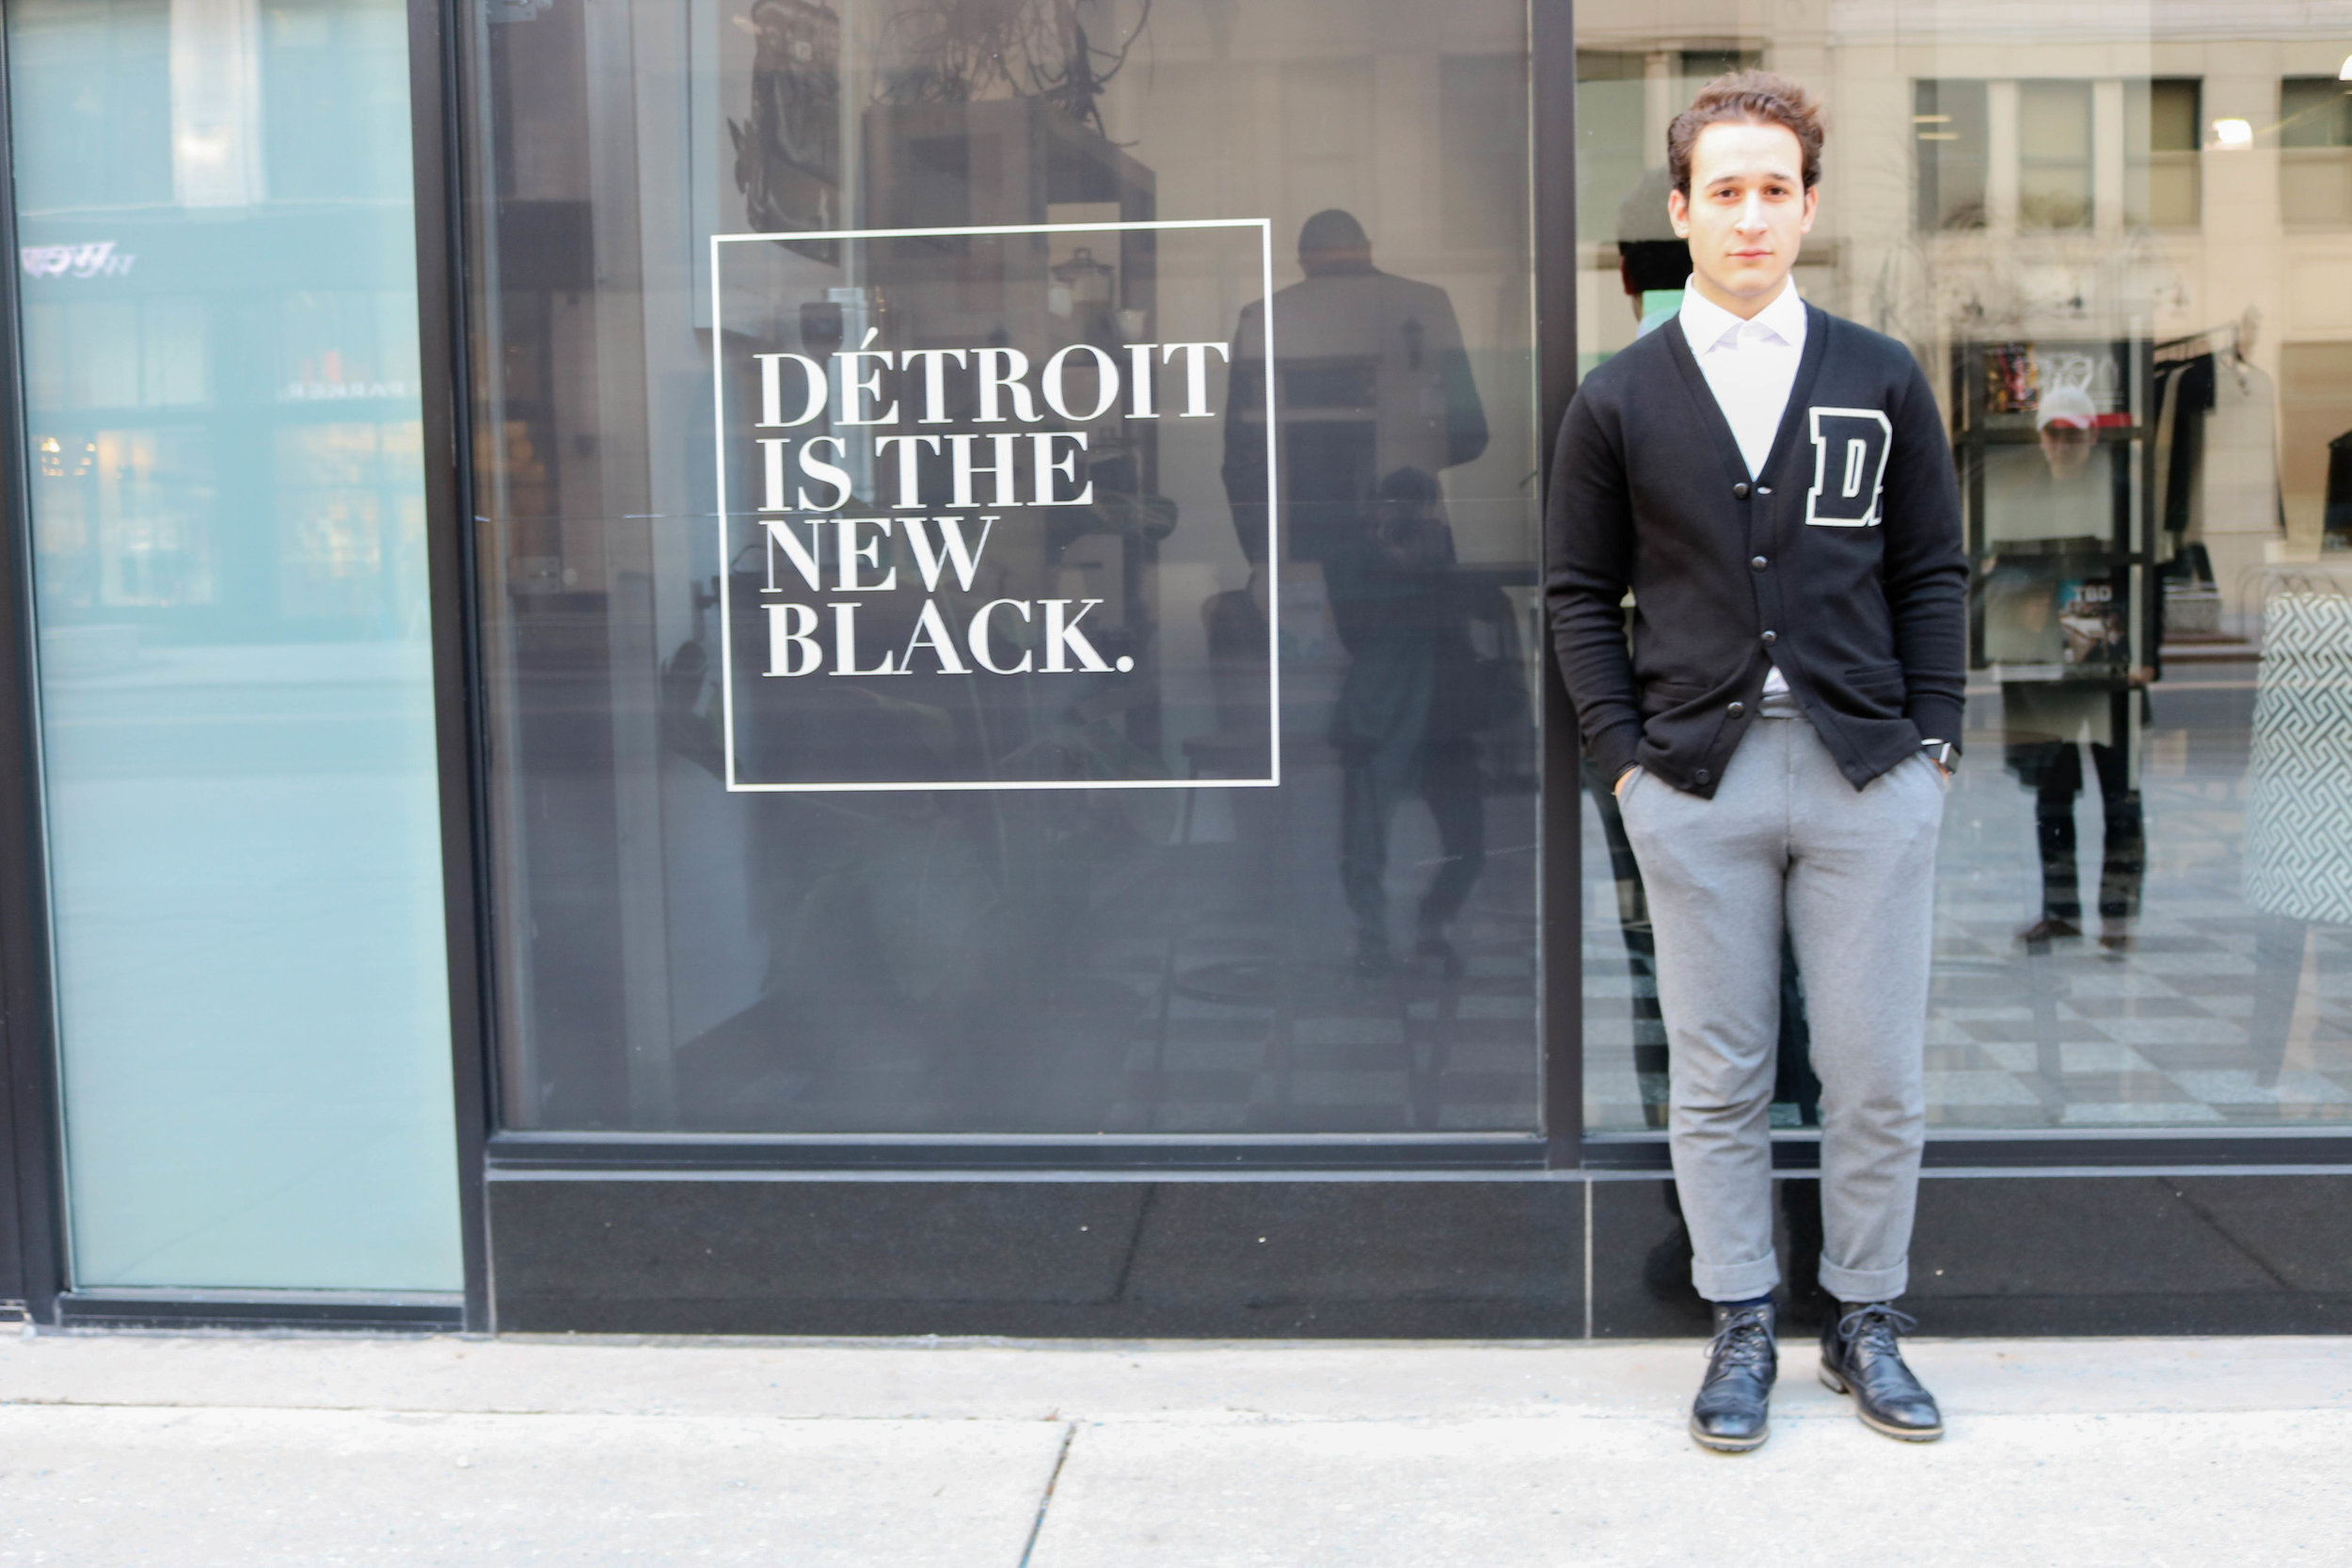 Look 2: D is for Detroit